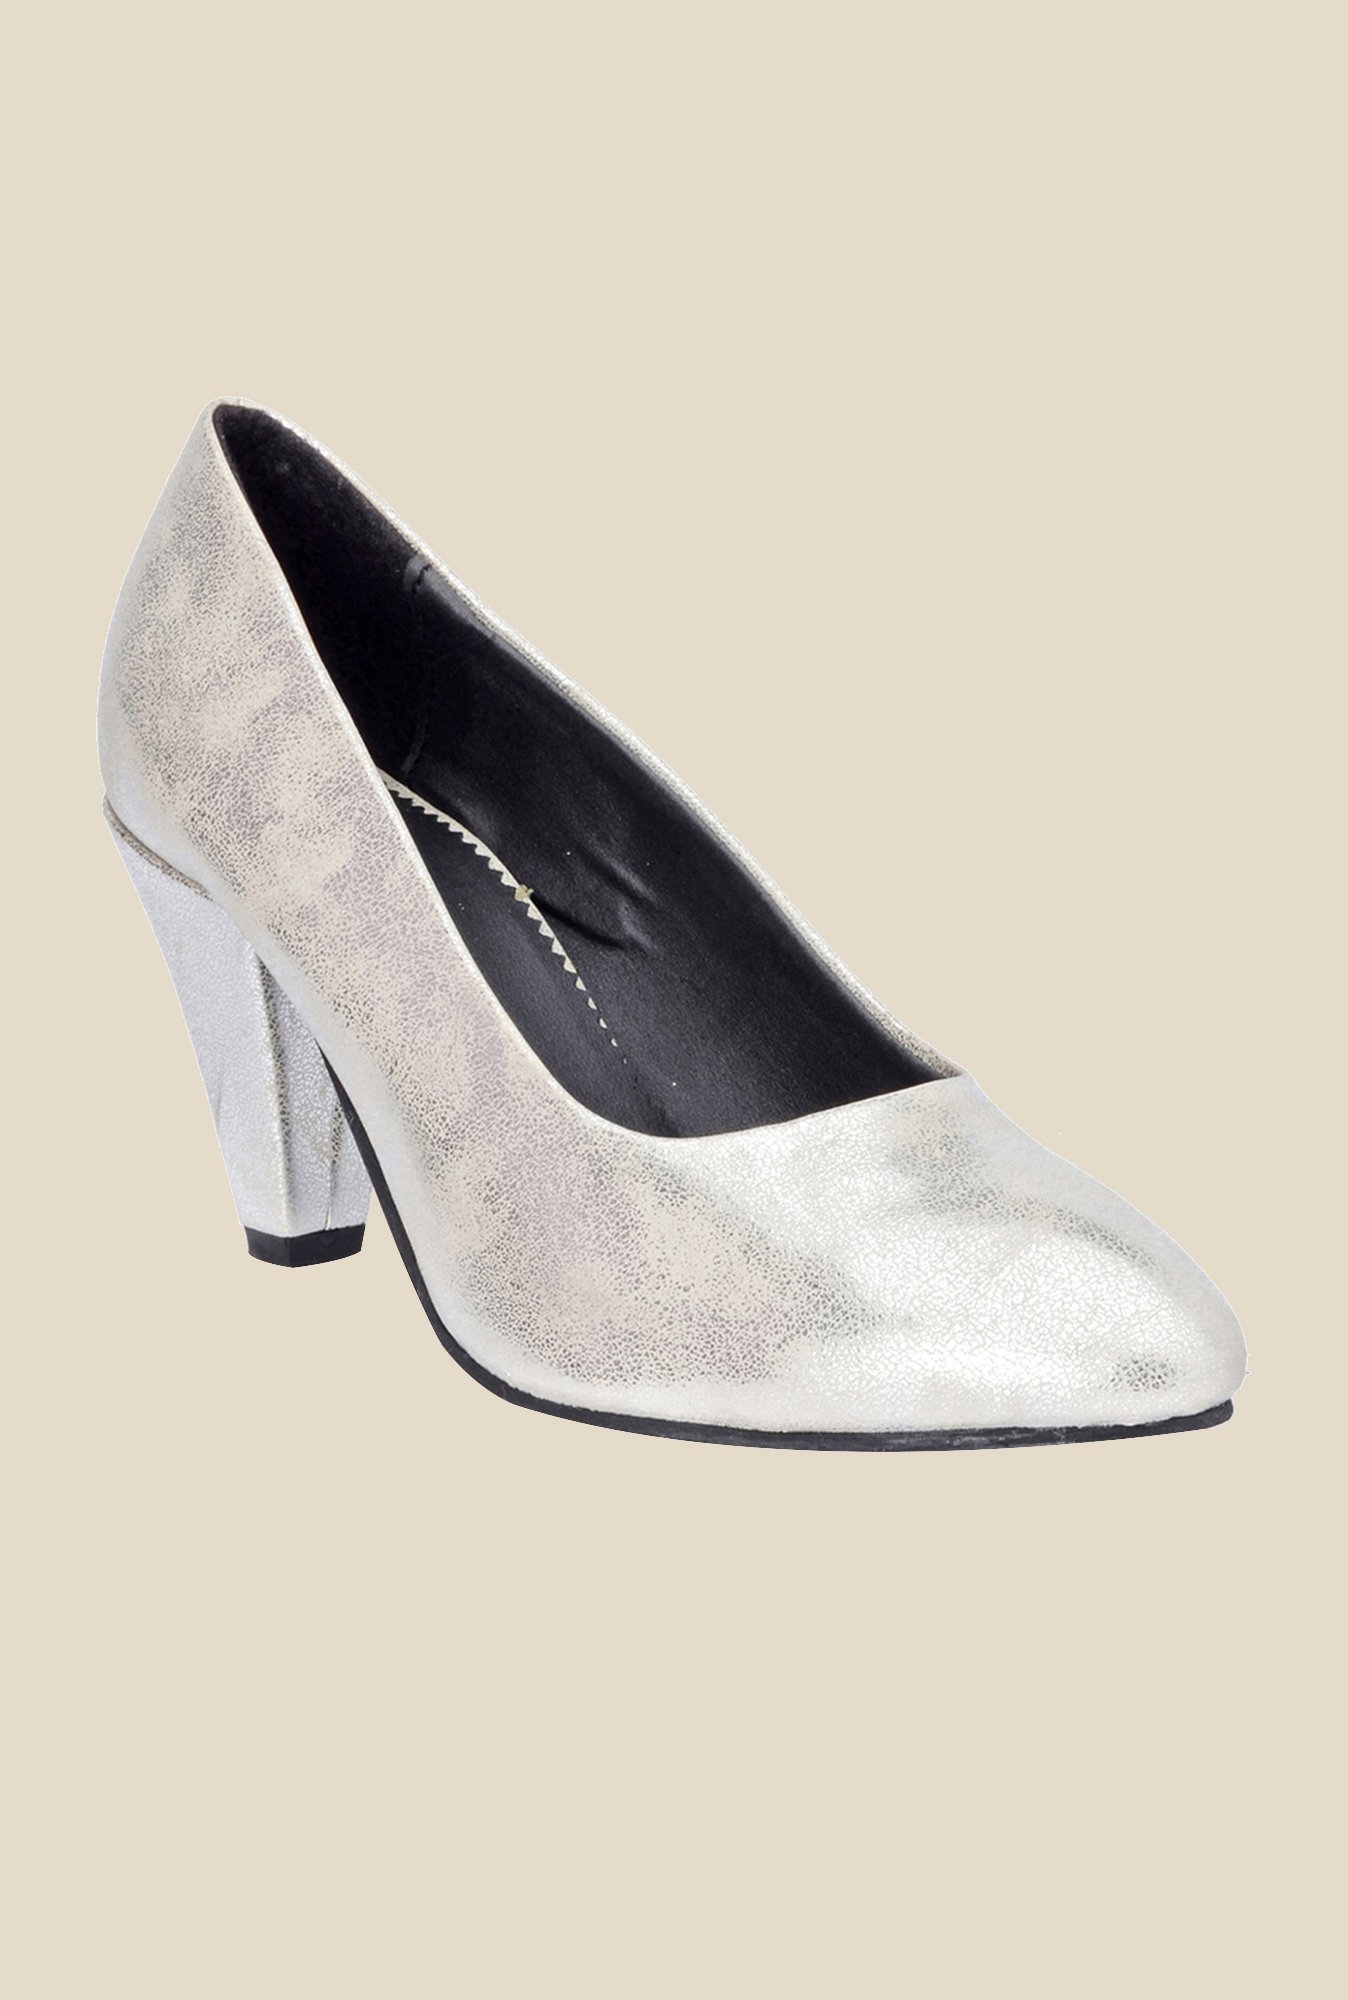 Bruno Manetti Silver Stiletto Heeled Pumps